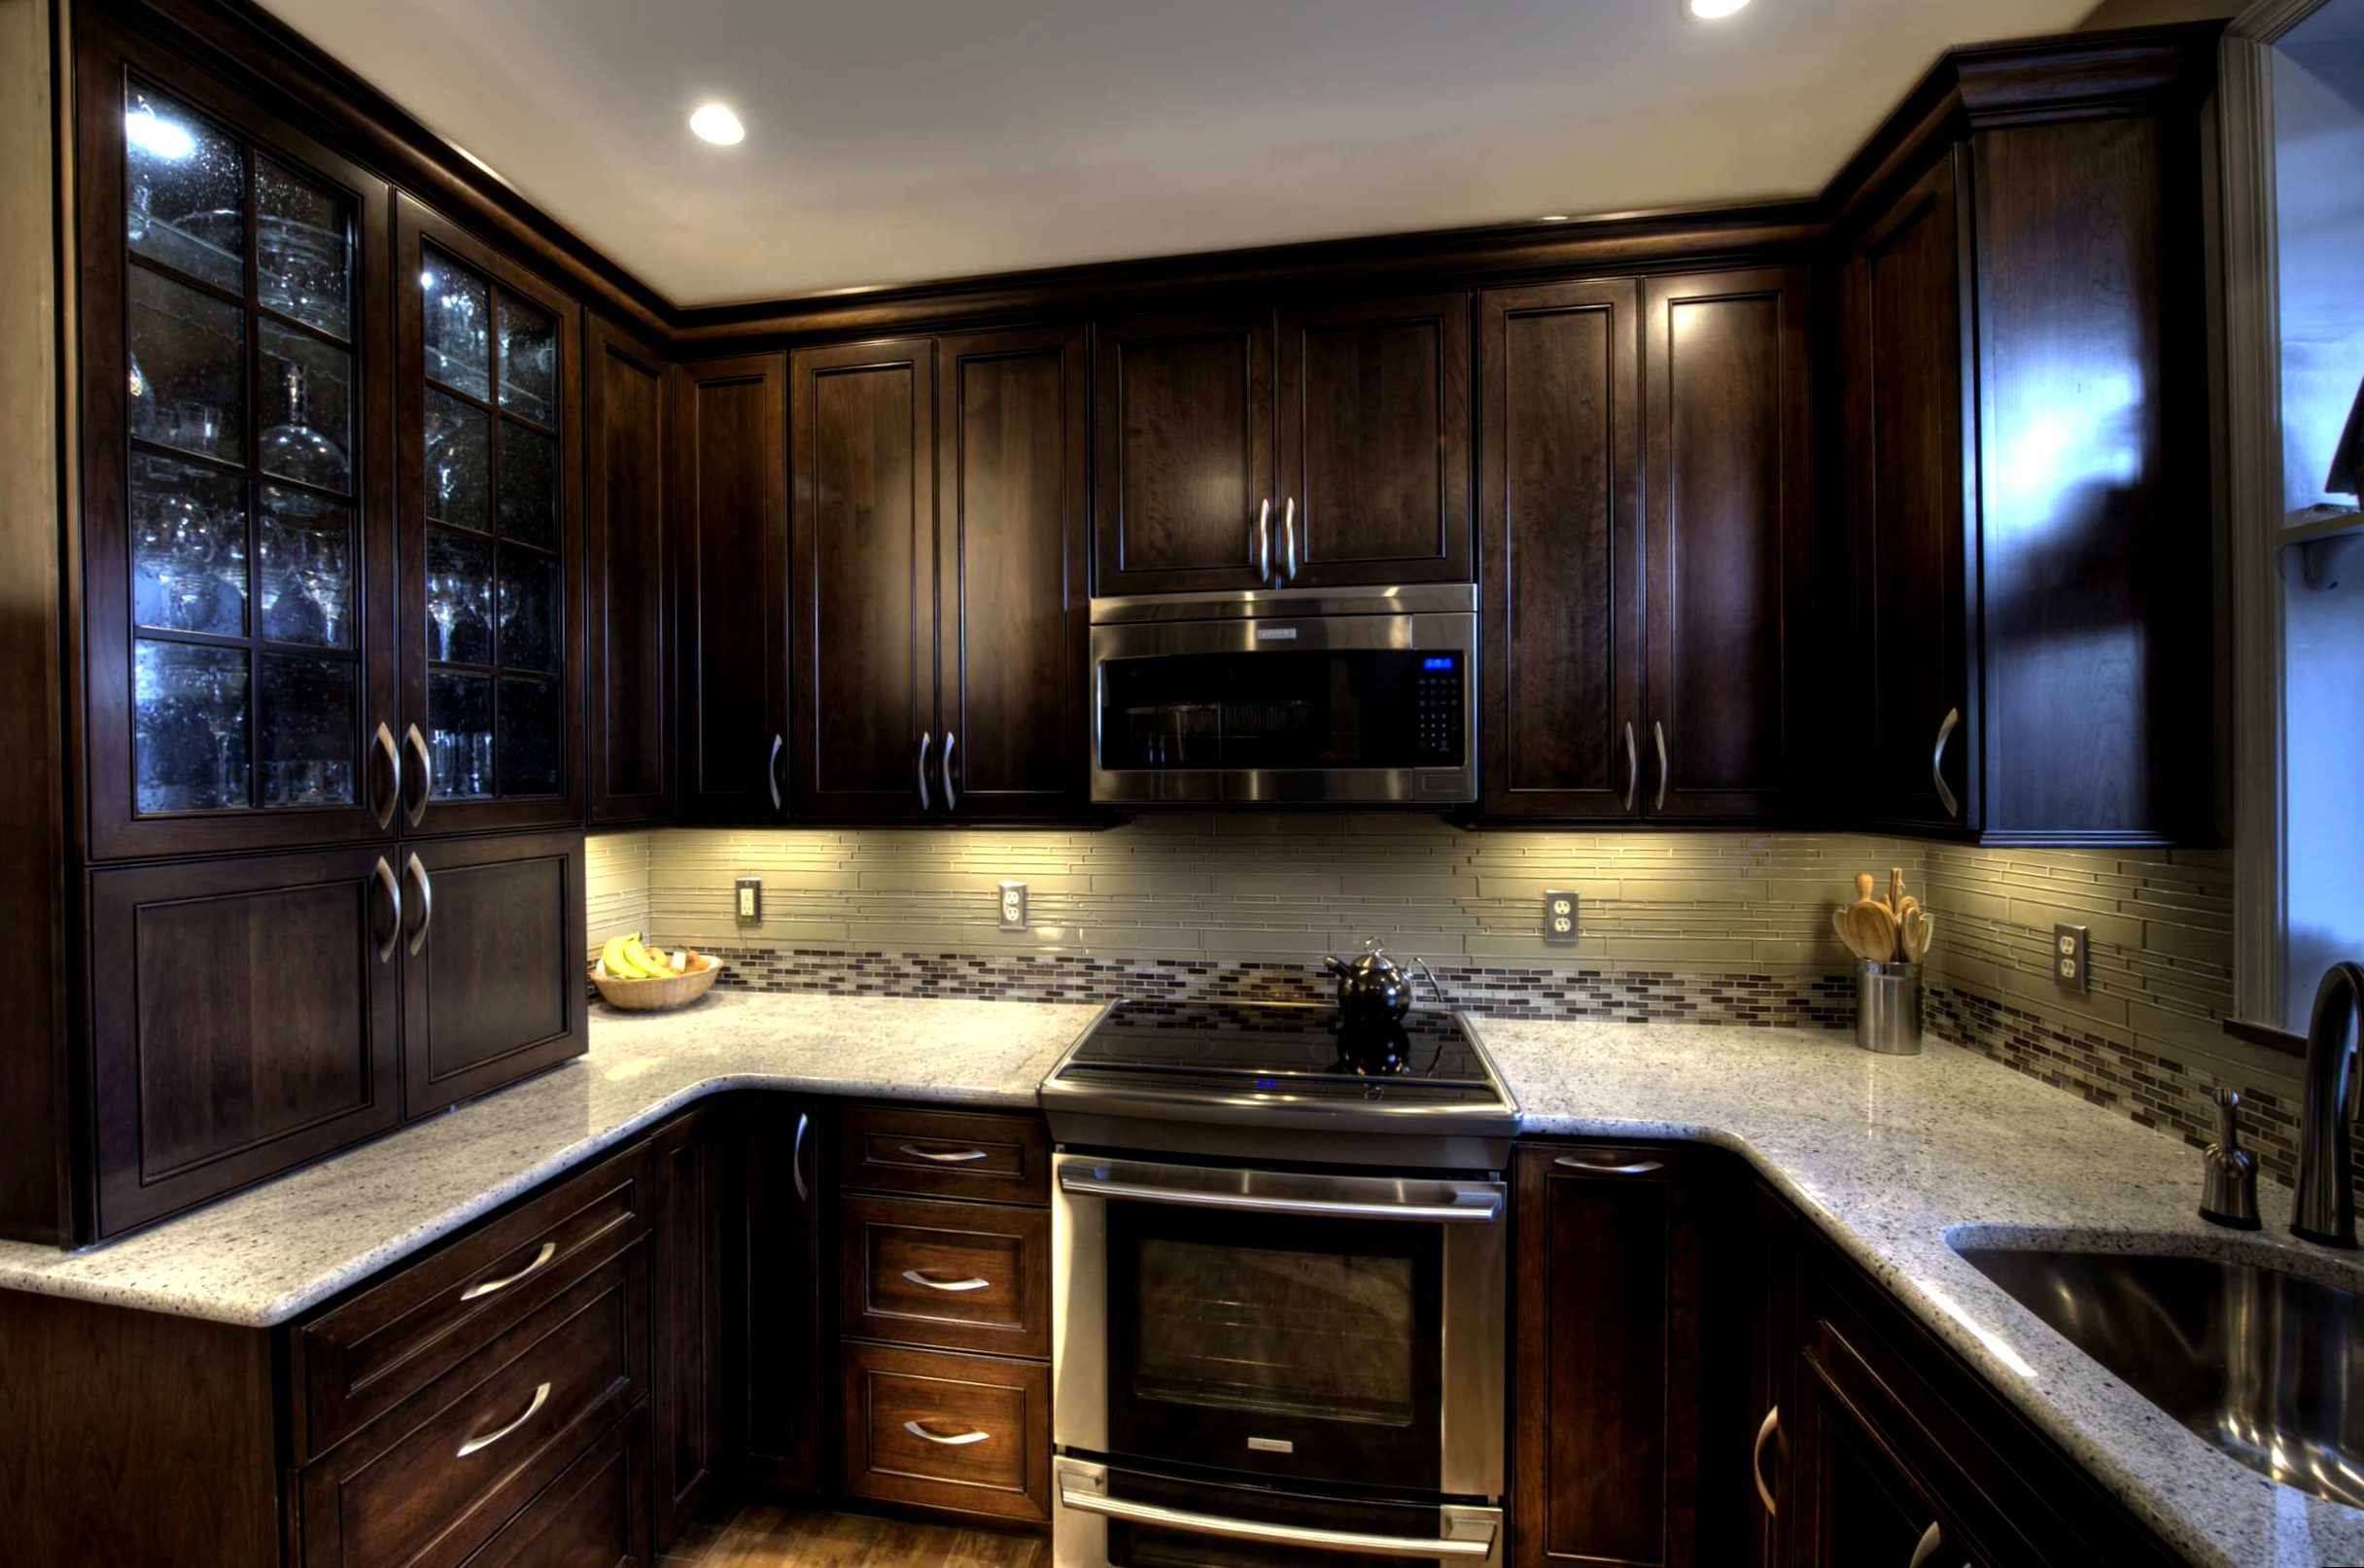 kitchen-photo-6737